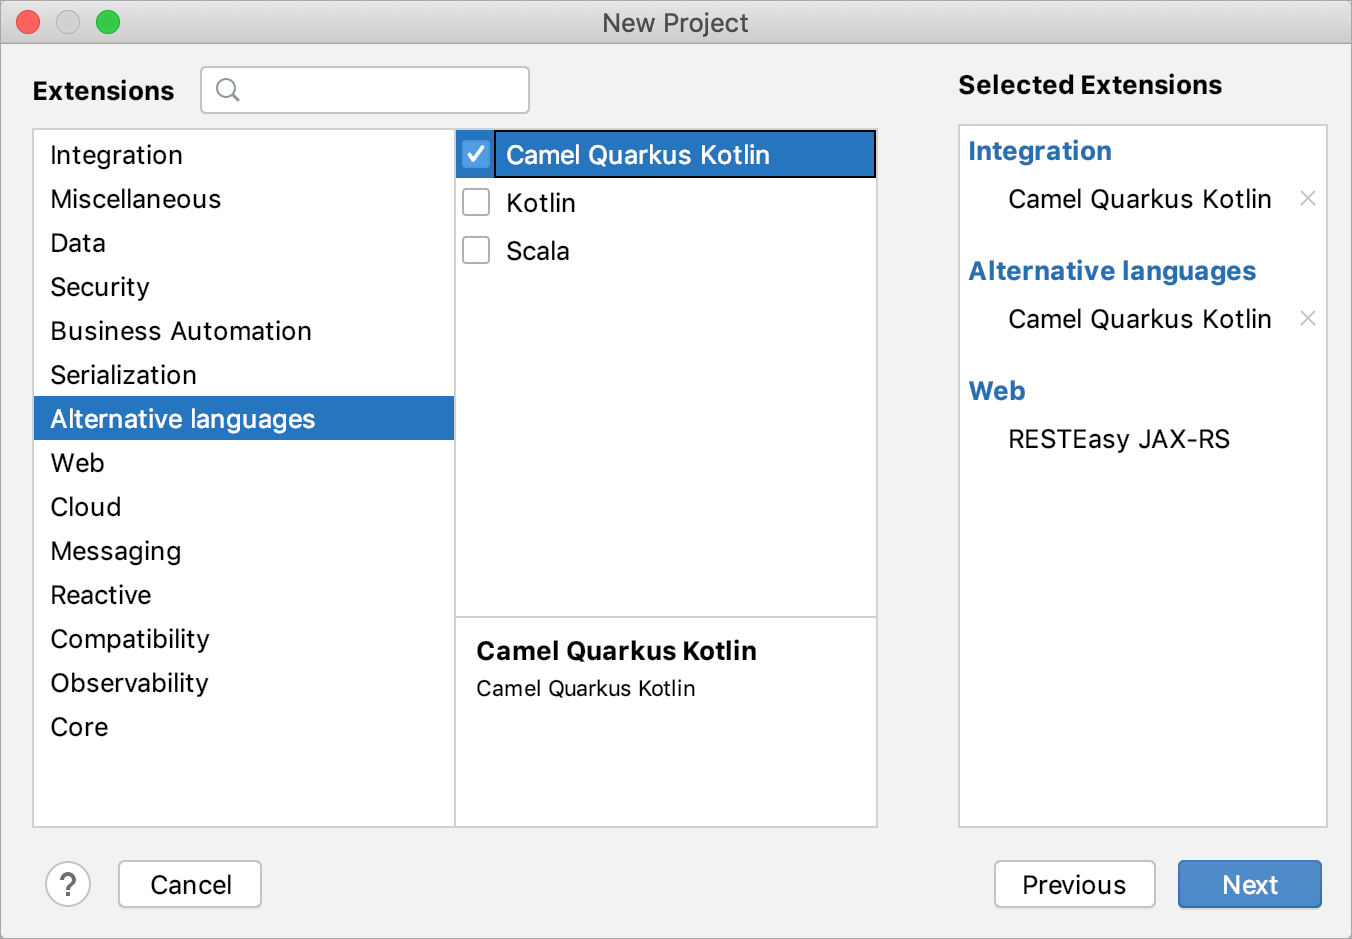 Selecting extensions for the new Quarkus project